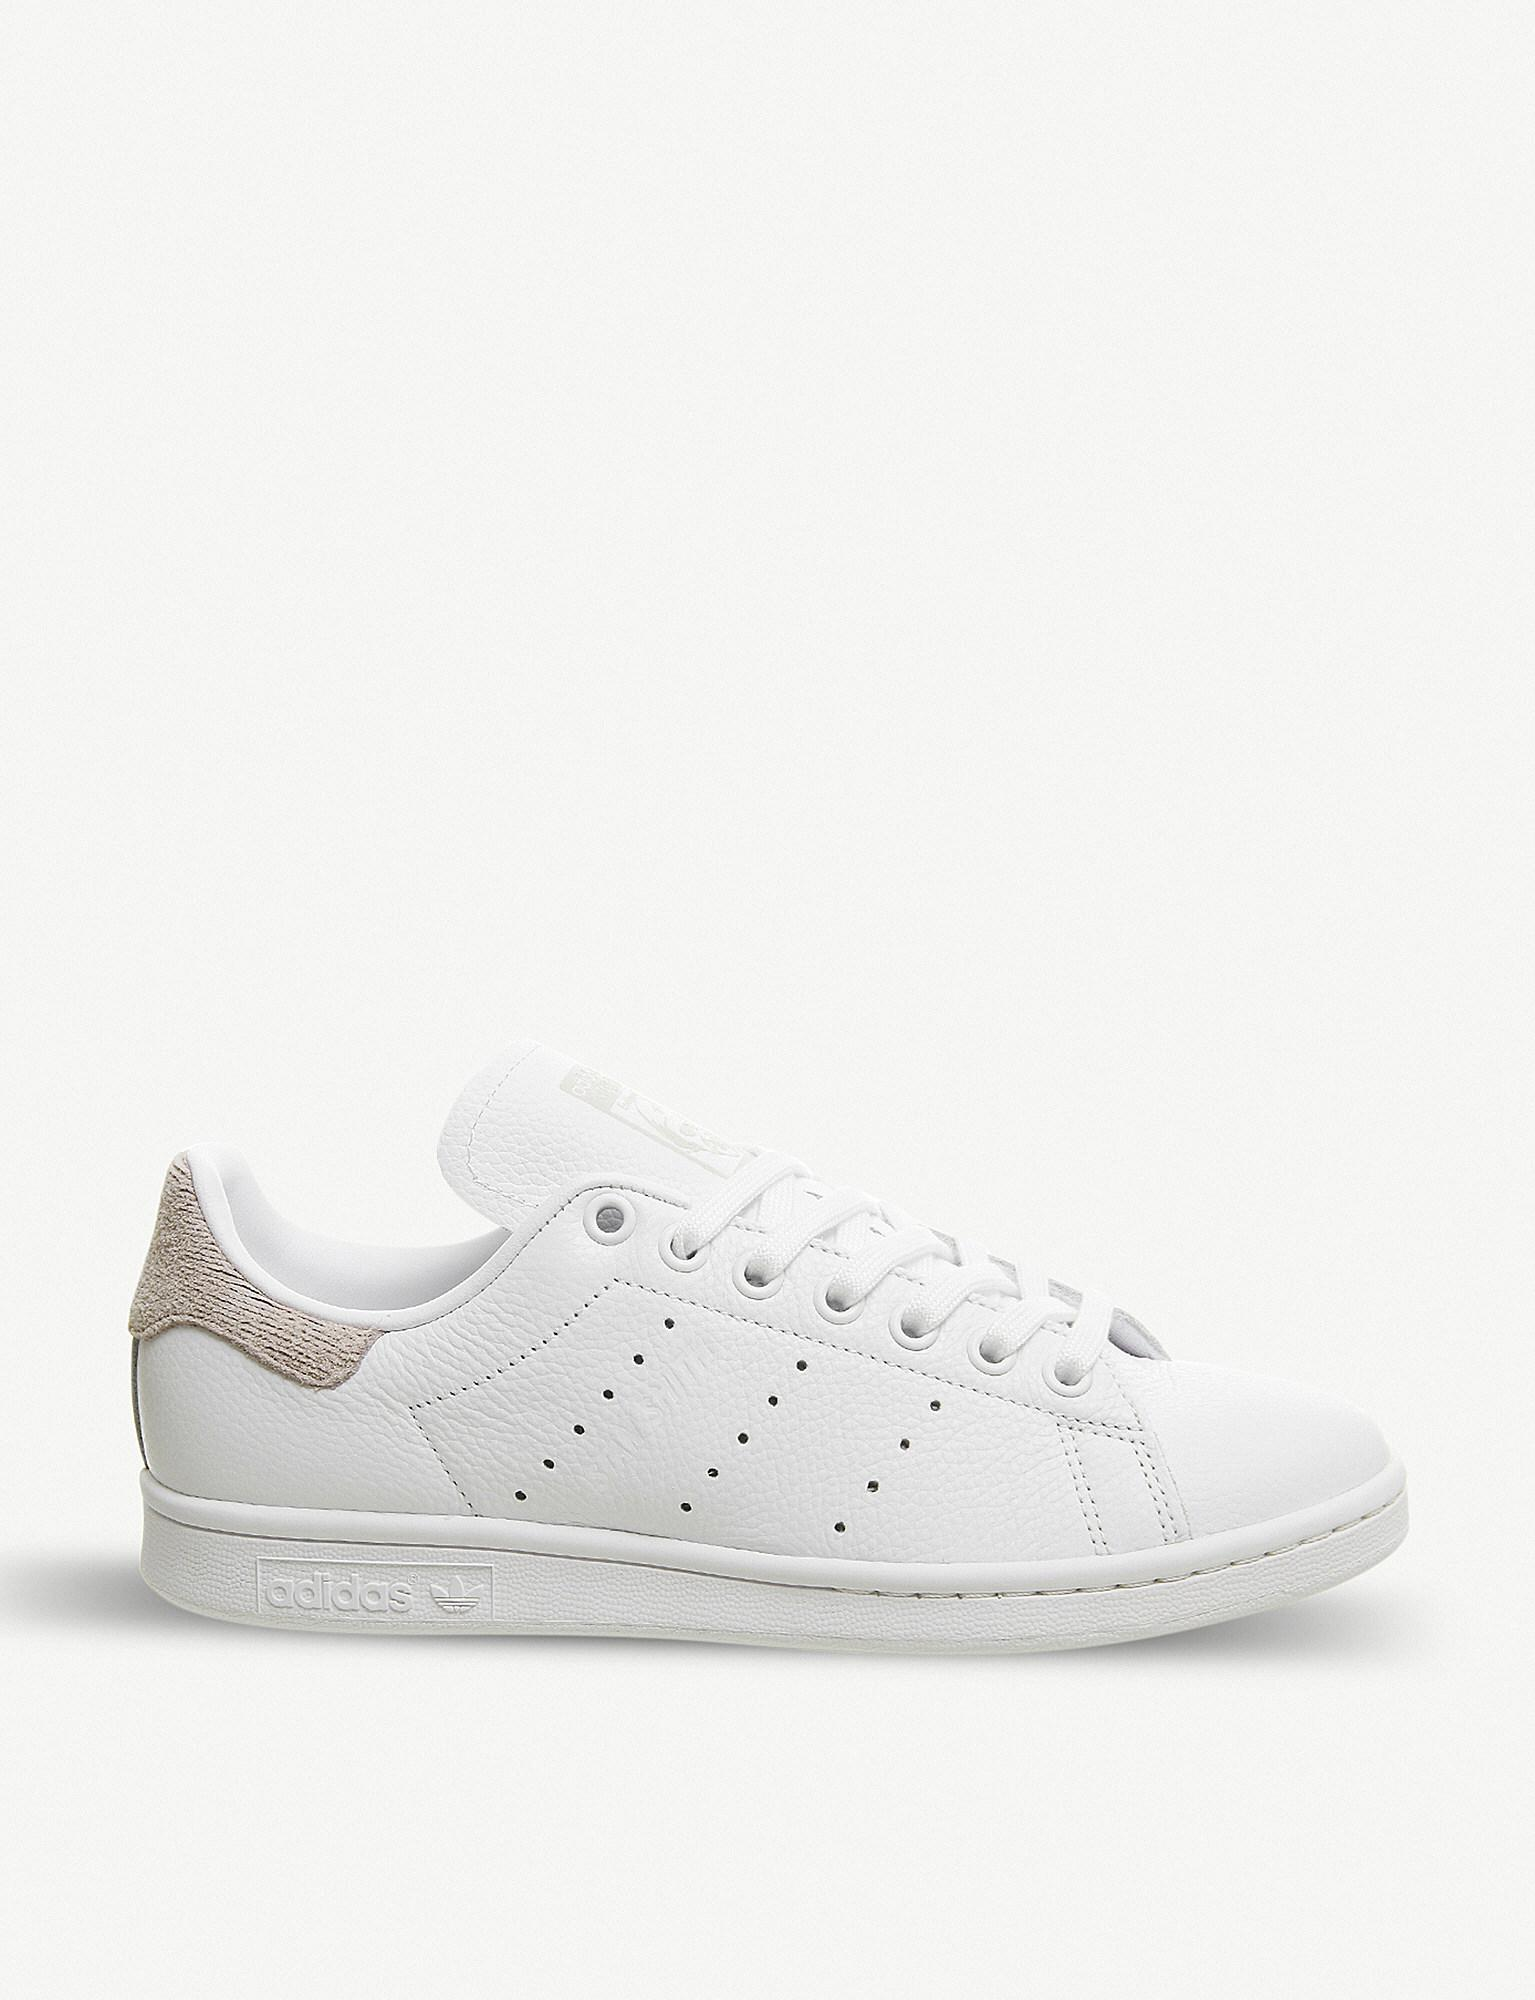 10f03ca5cd0d adidas Stan Smith Leather Trainers in White for Men - Lyst